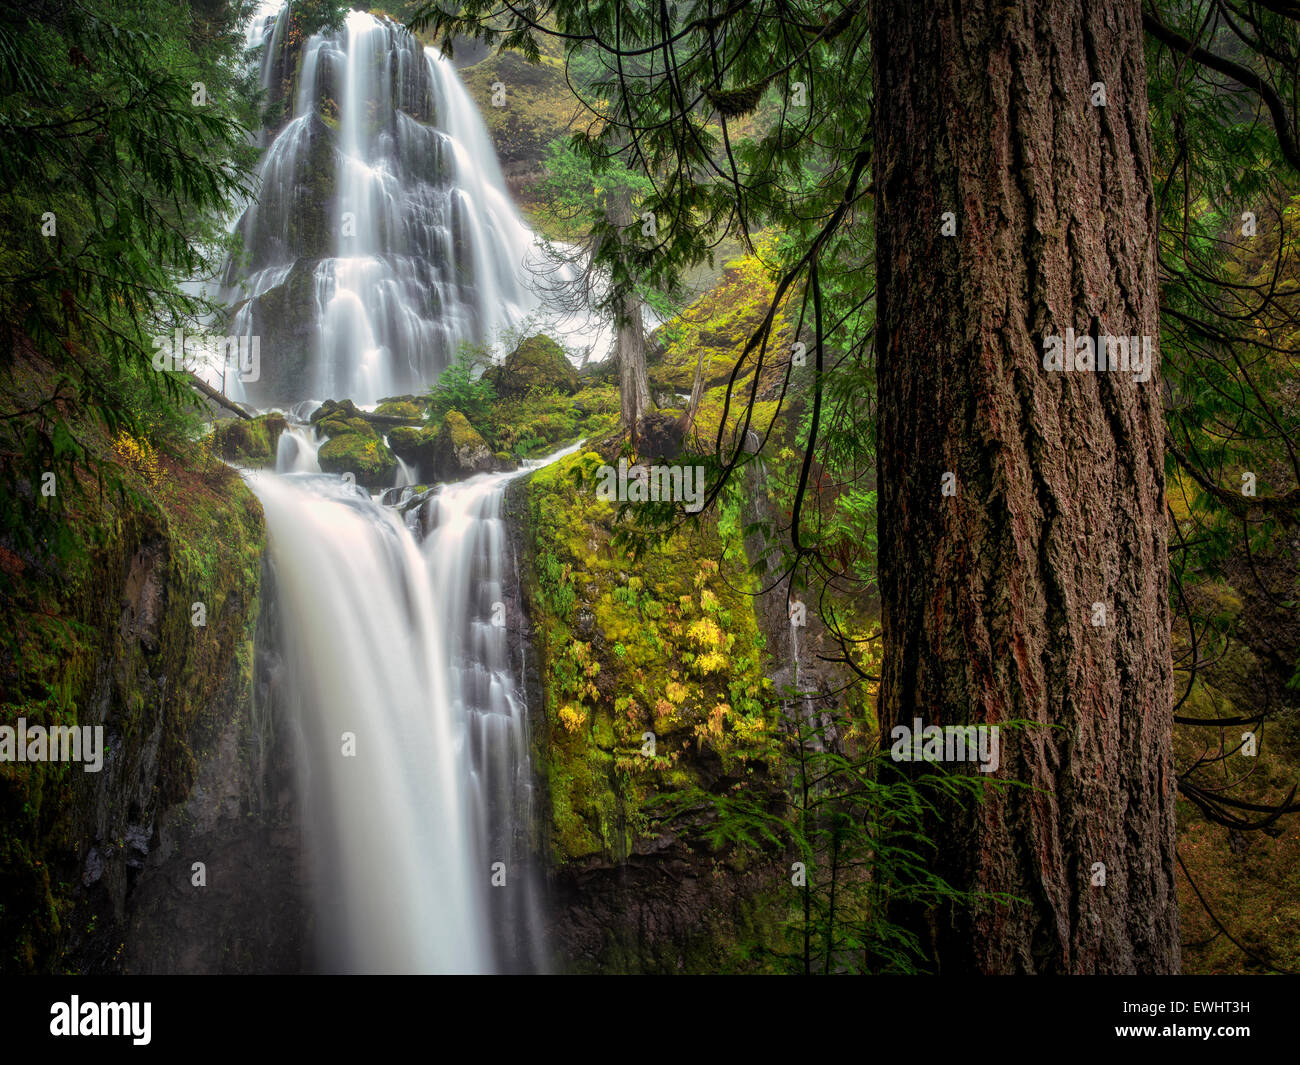 Falls Creek Falls, Washington. Immagini Stock